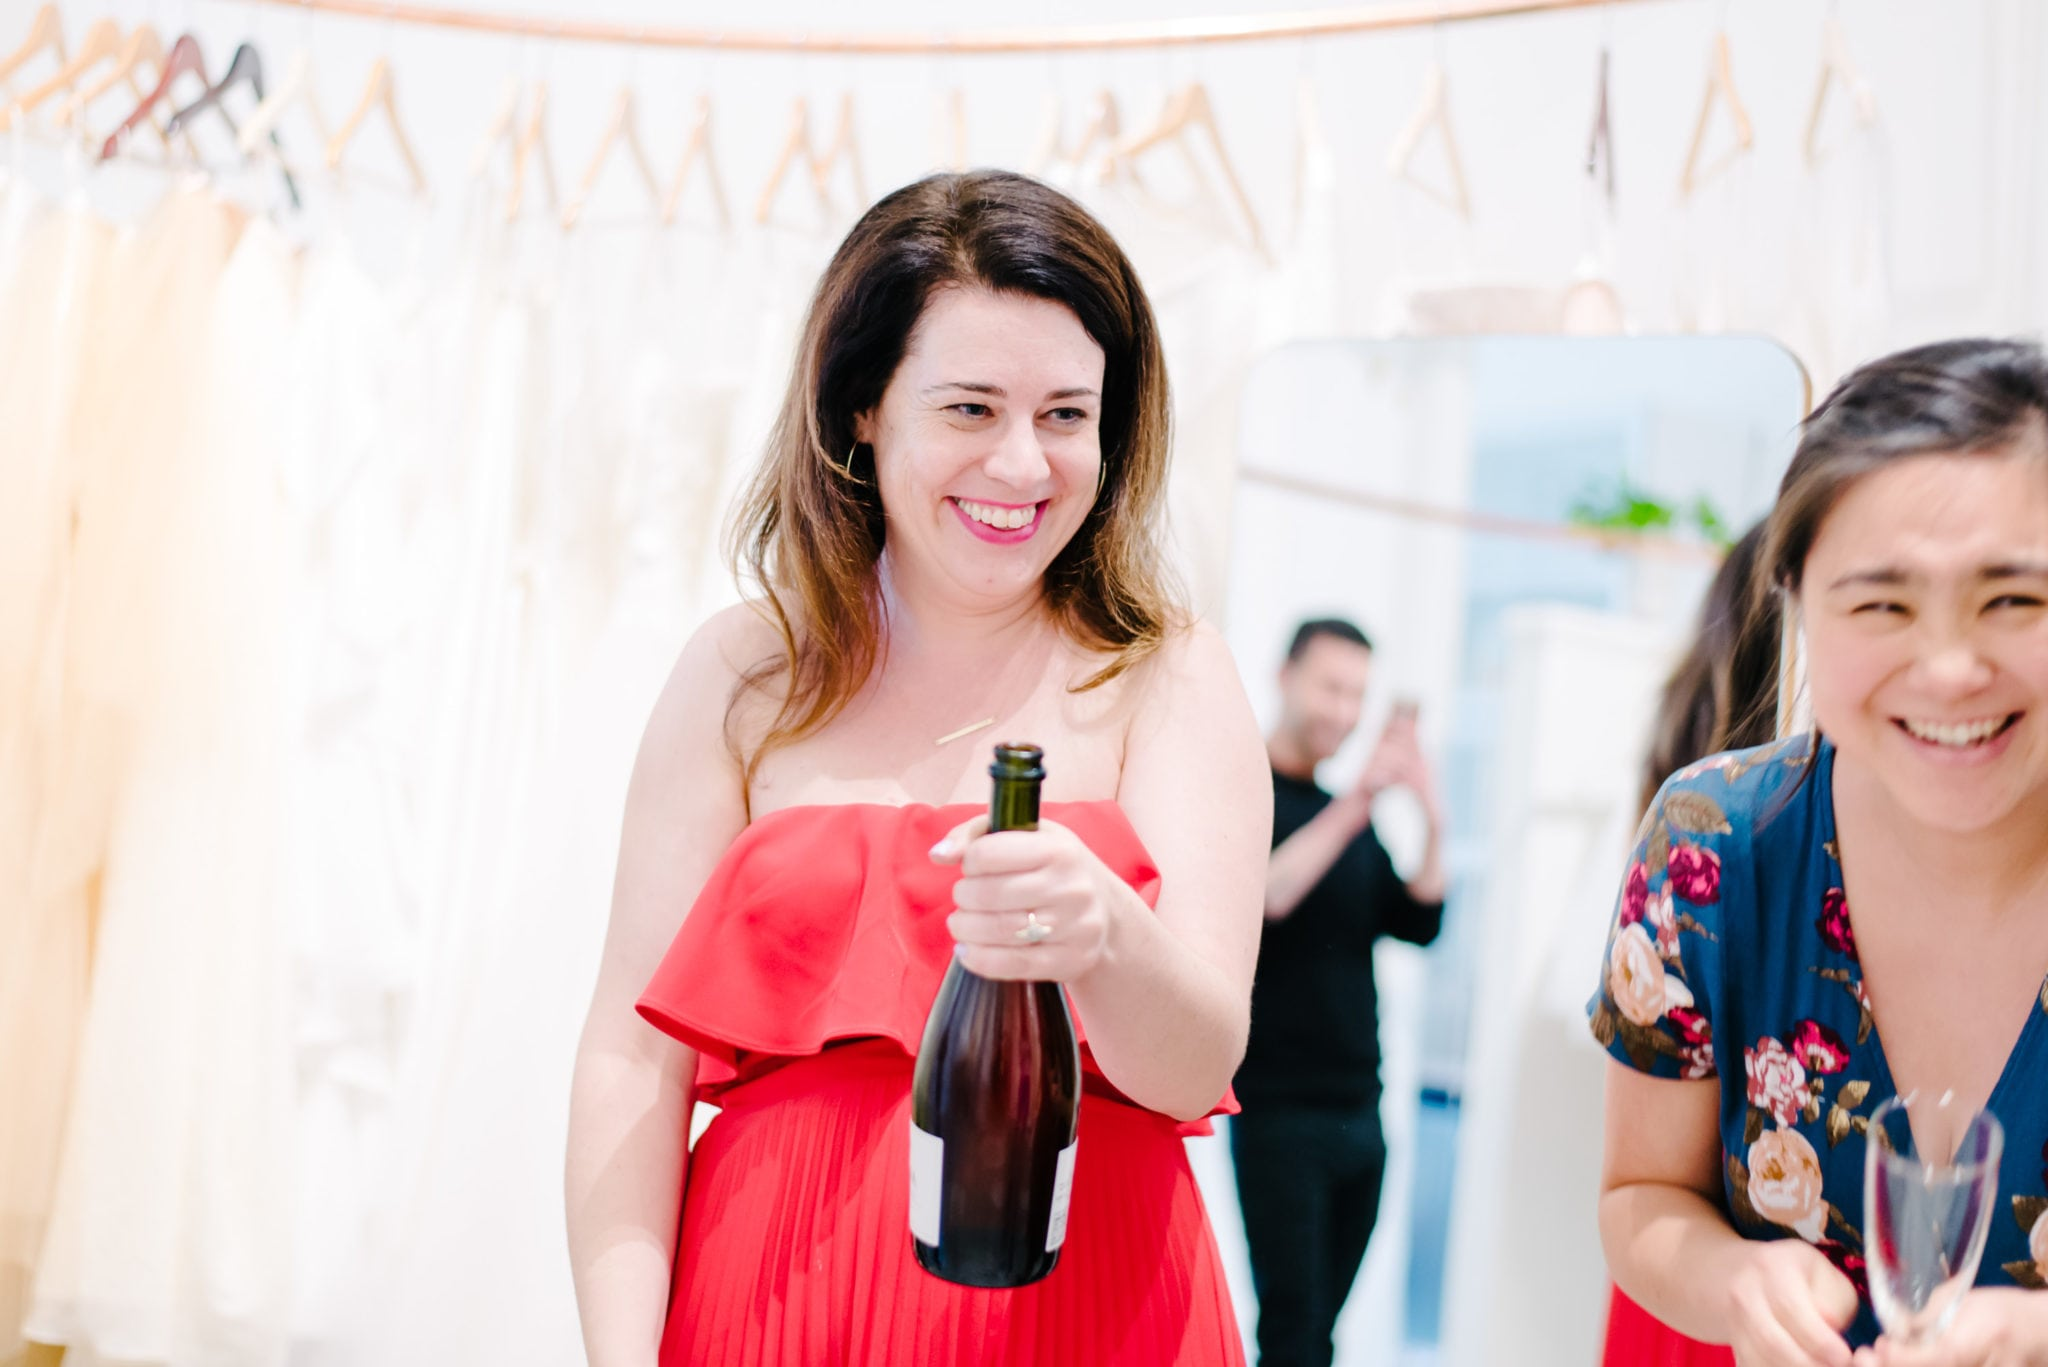 woman with long brunette hair wearing red dress is smiling holding champagne bottle woman beside her wearing blue floral dress is smiling holding champagne flute mirror behind women shows man dressed in black taking a picture with camera phone